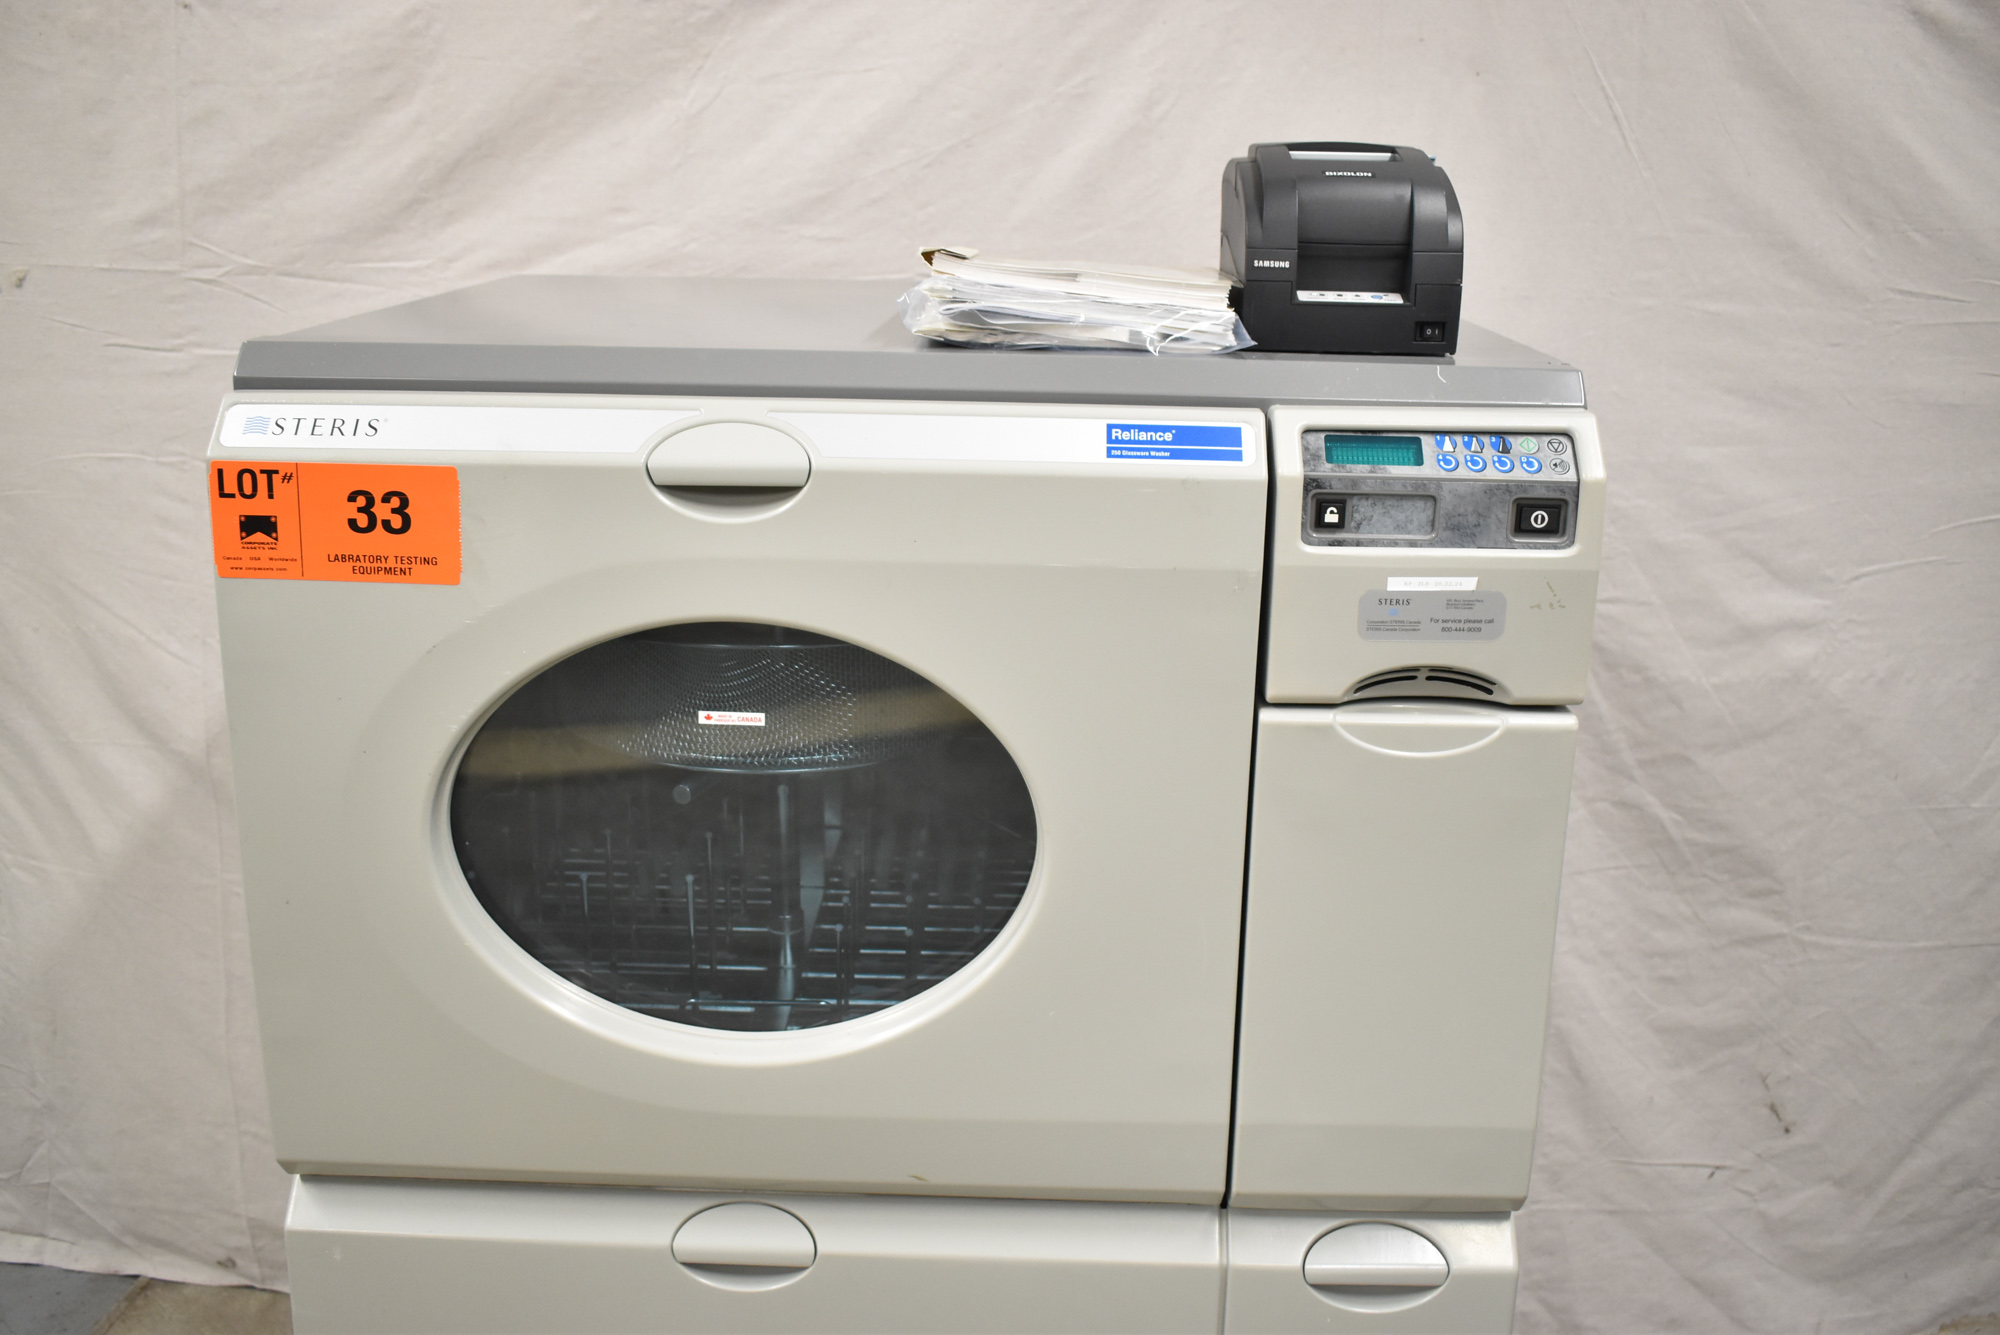 STERIS RELIANCE 250 ULTRA WASH PLUS LABORATORY GLASSWARE WASHER WITH DIGITAL TOUCH SCREEN CONTROL, - Image 3 of 7